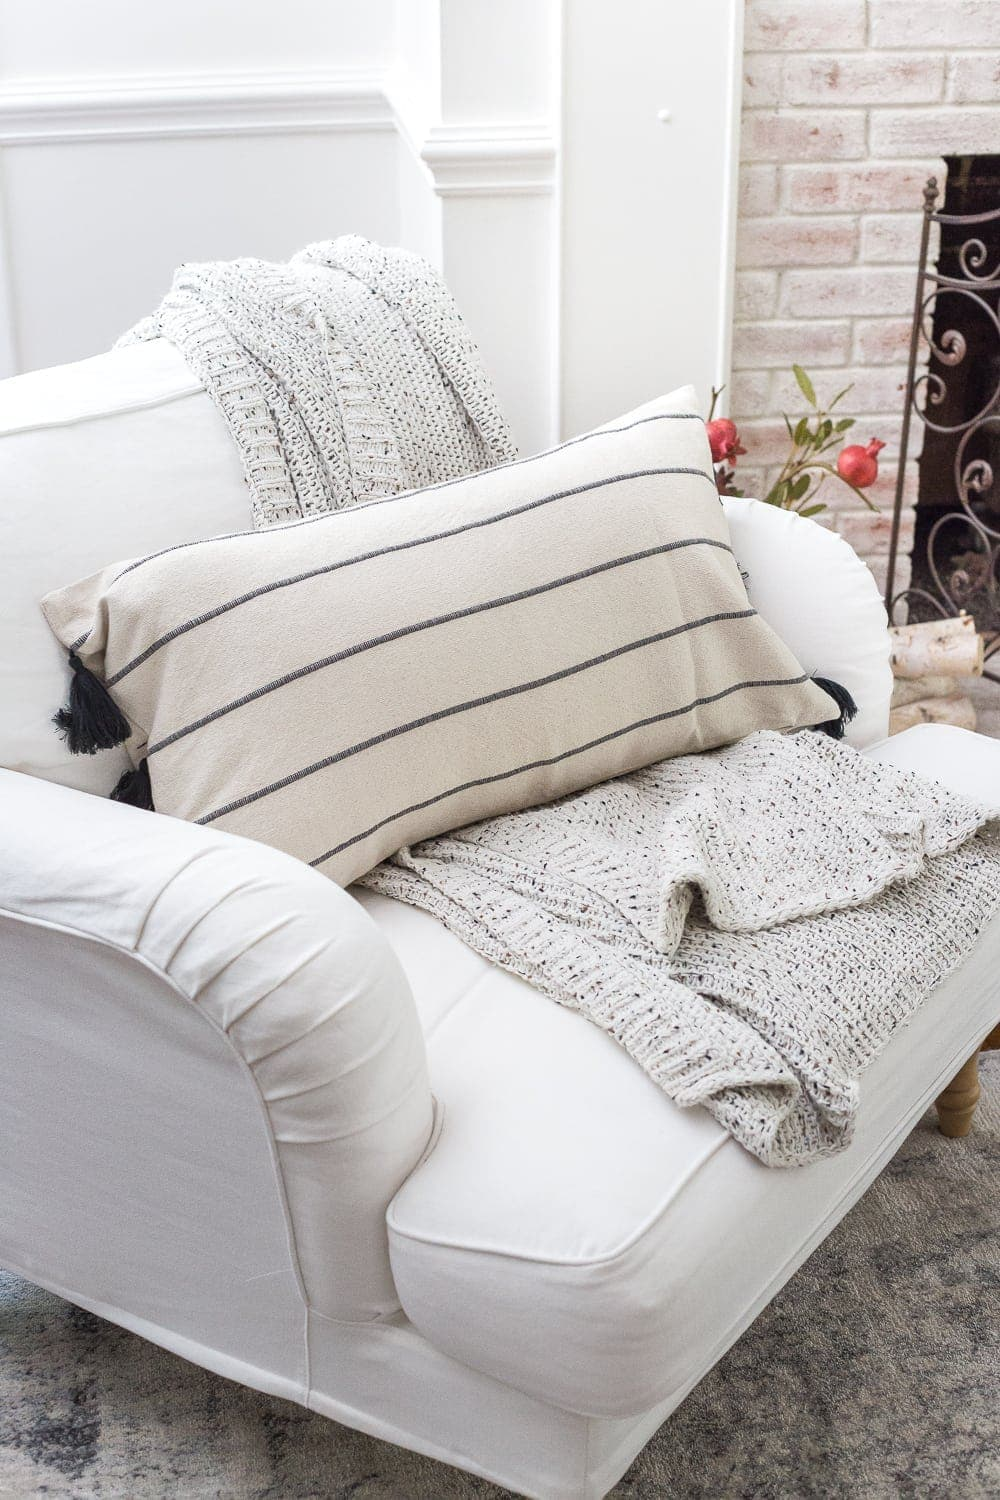 Neutral fall decor and cozy reading chair